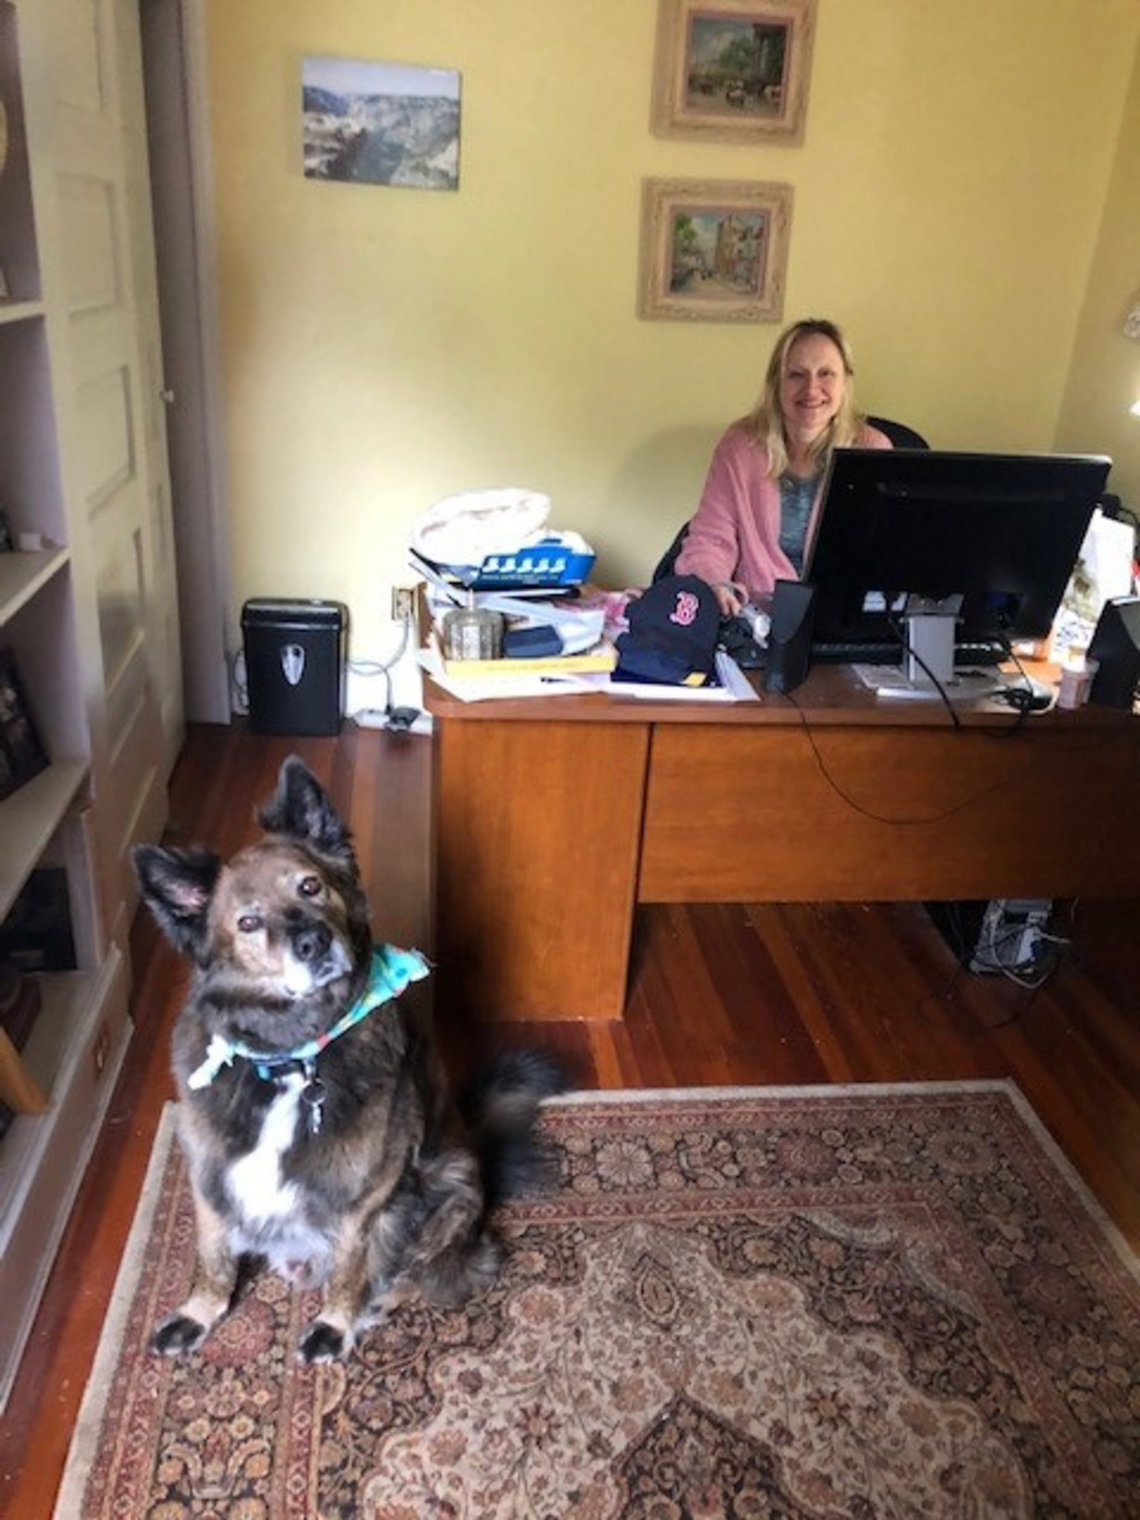 Worker at desk with onlooking pup.